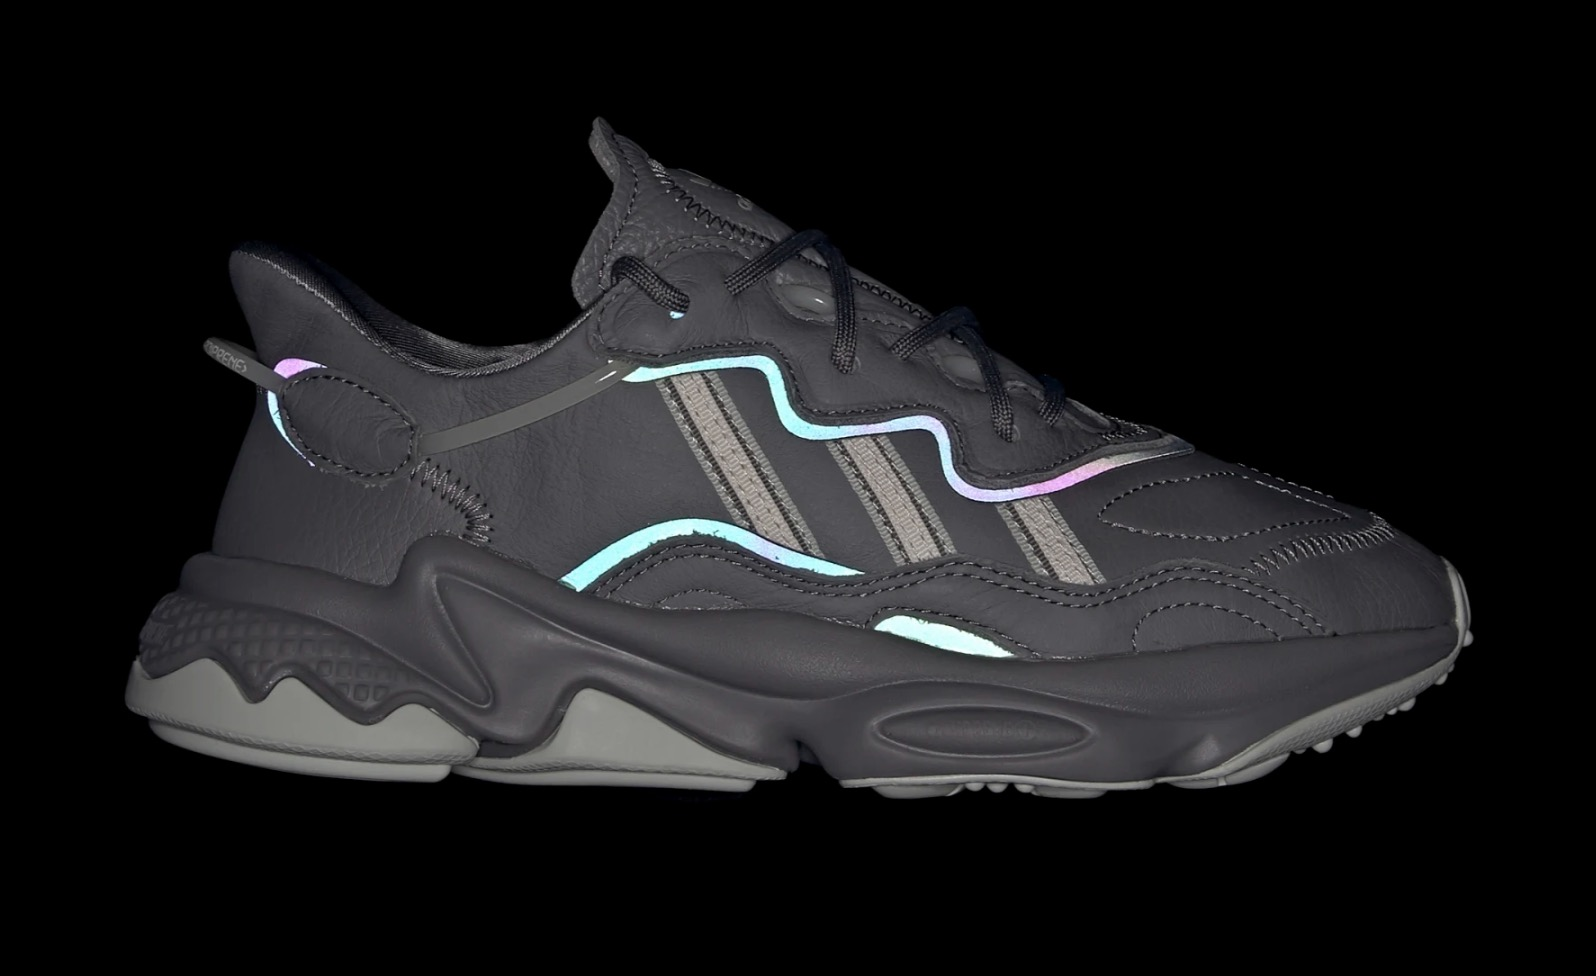 sports shoes b612a 52096 Look At The Multicoloured 'Xeno' Reflective Panels On This ...